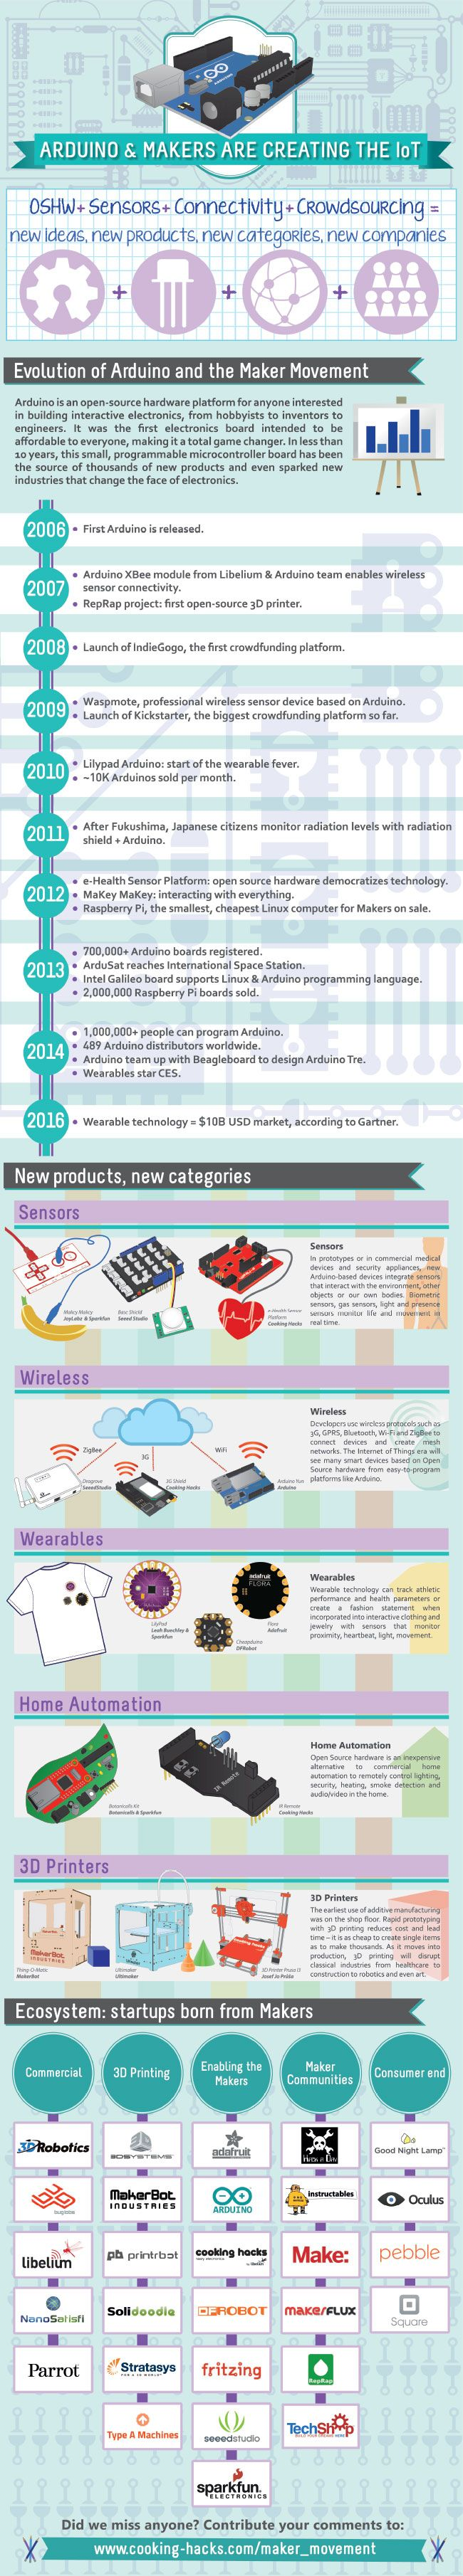 """Arduino & Makers are creating the IoT"""" #infographic #DIY #sensors"""